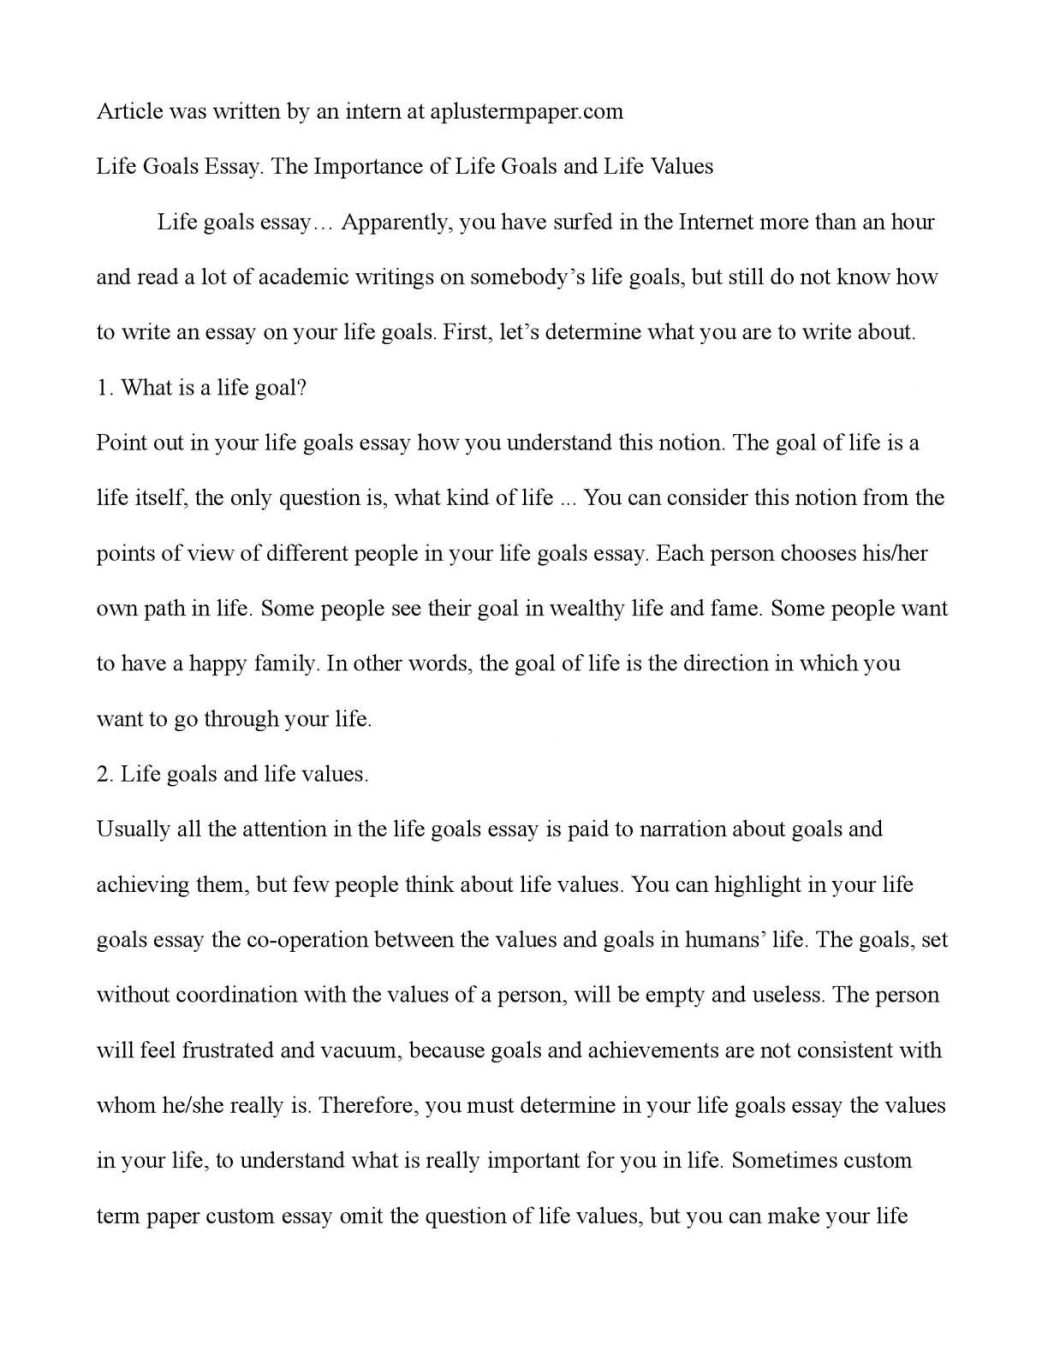 009 Essay About Goals On Academic Educational And Career Exampls Pdf My What Are Your 1048x1356 Awesome In High School After Life Full